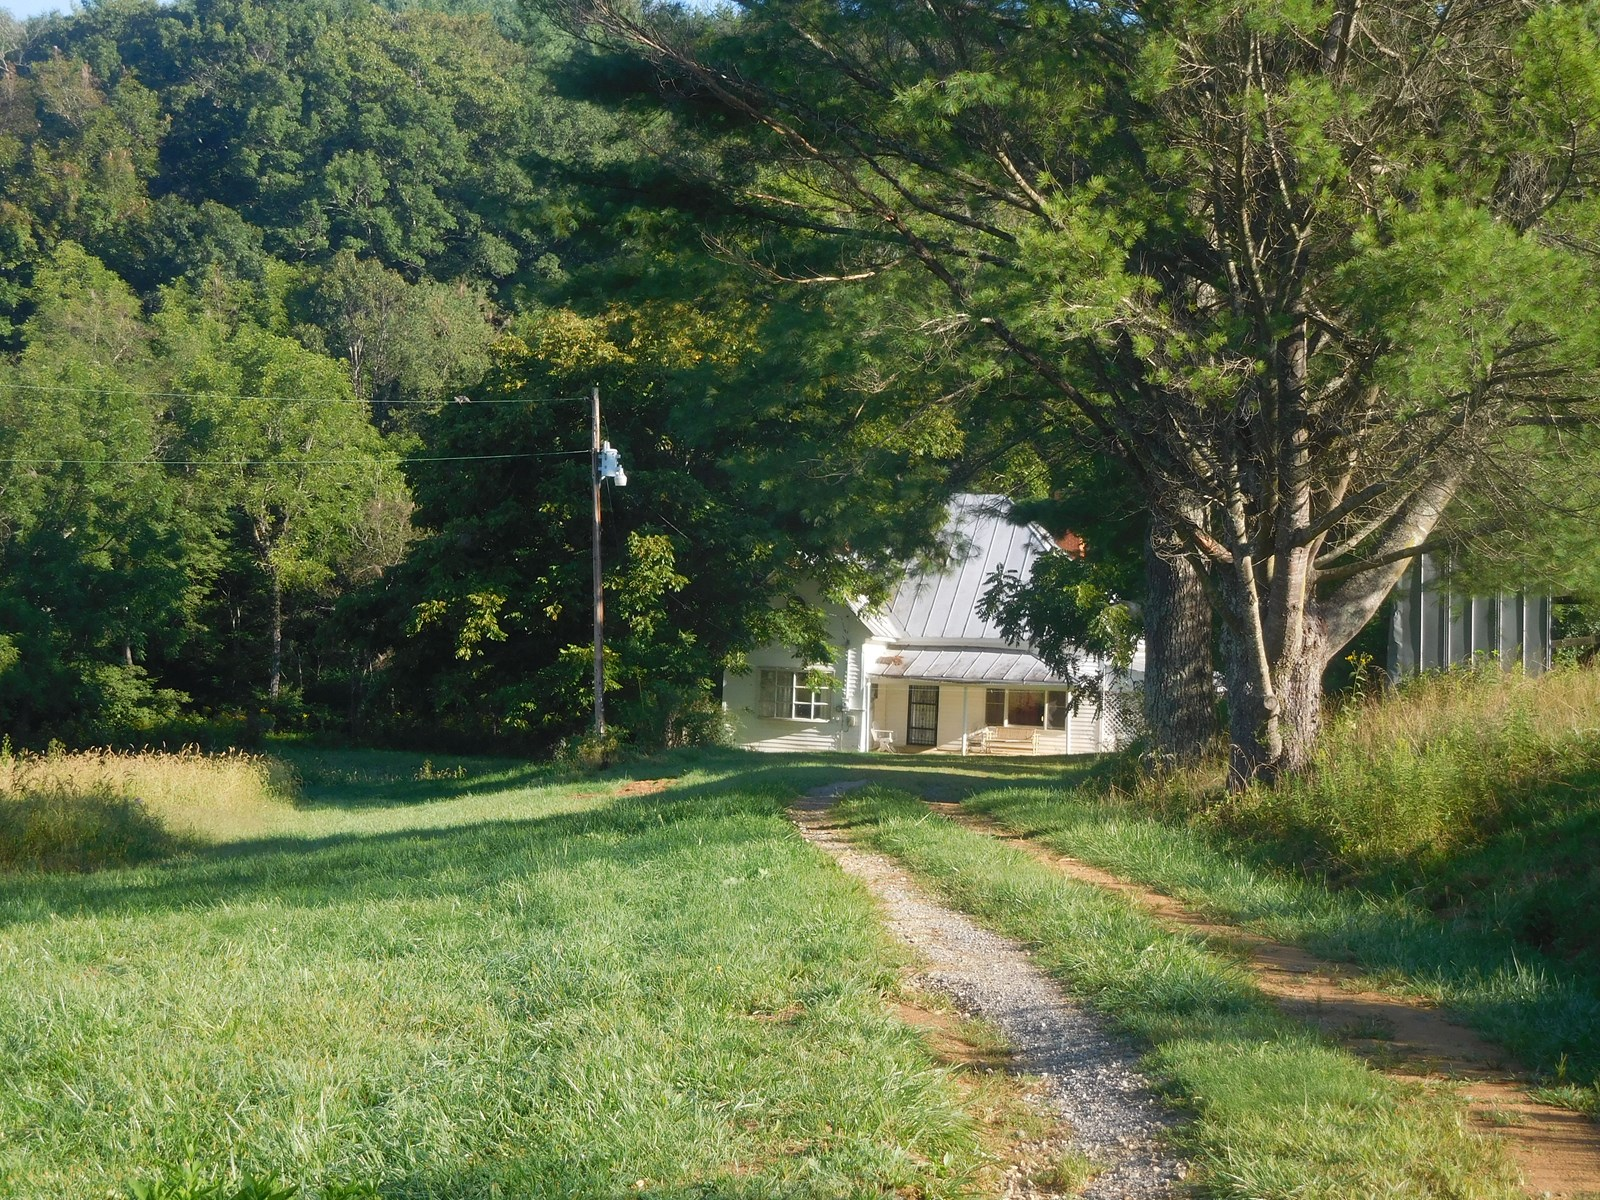 50 Acre +/- Farm for Sale in Alleghany County